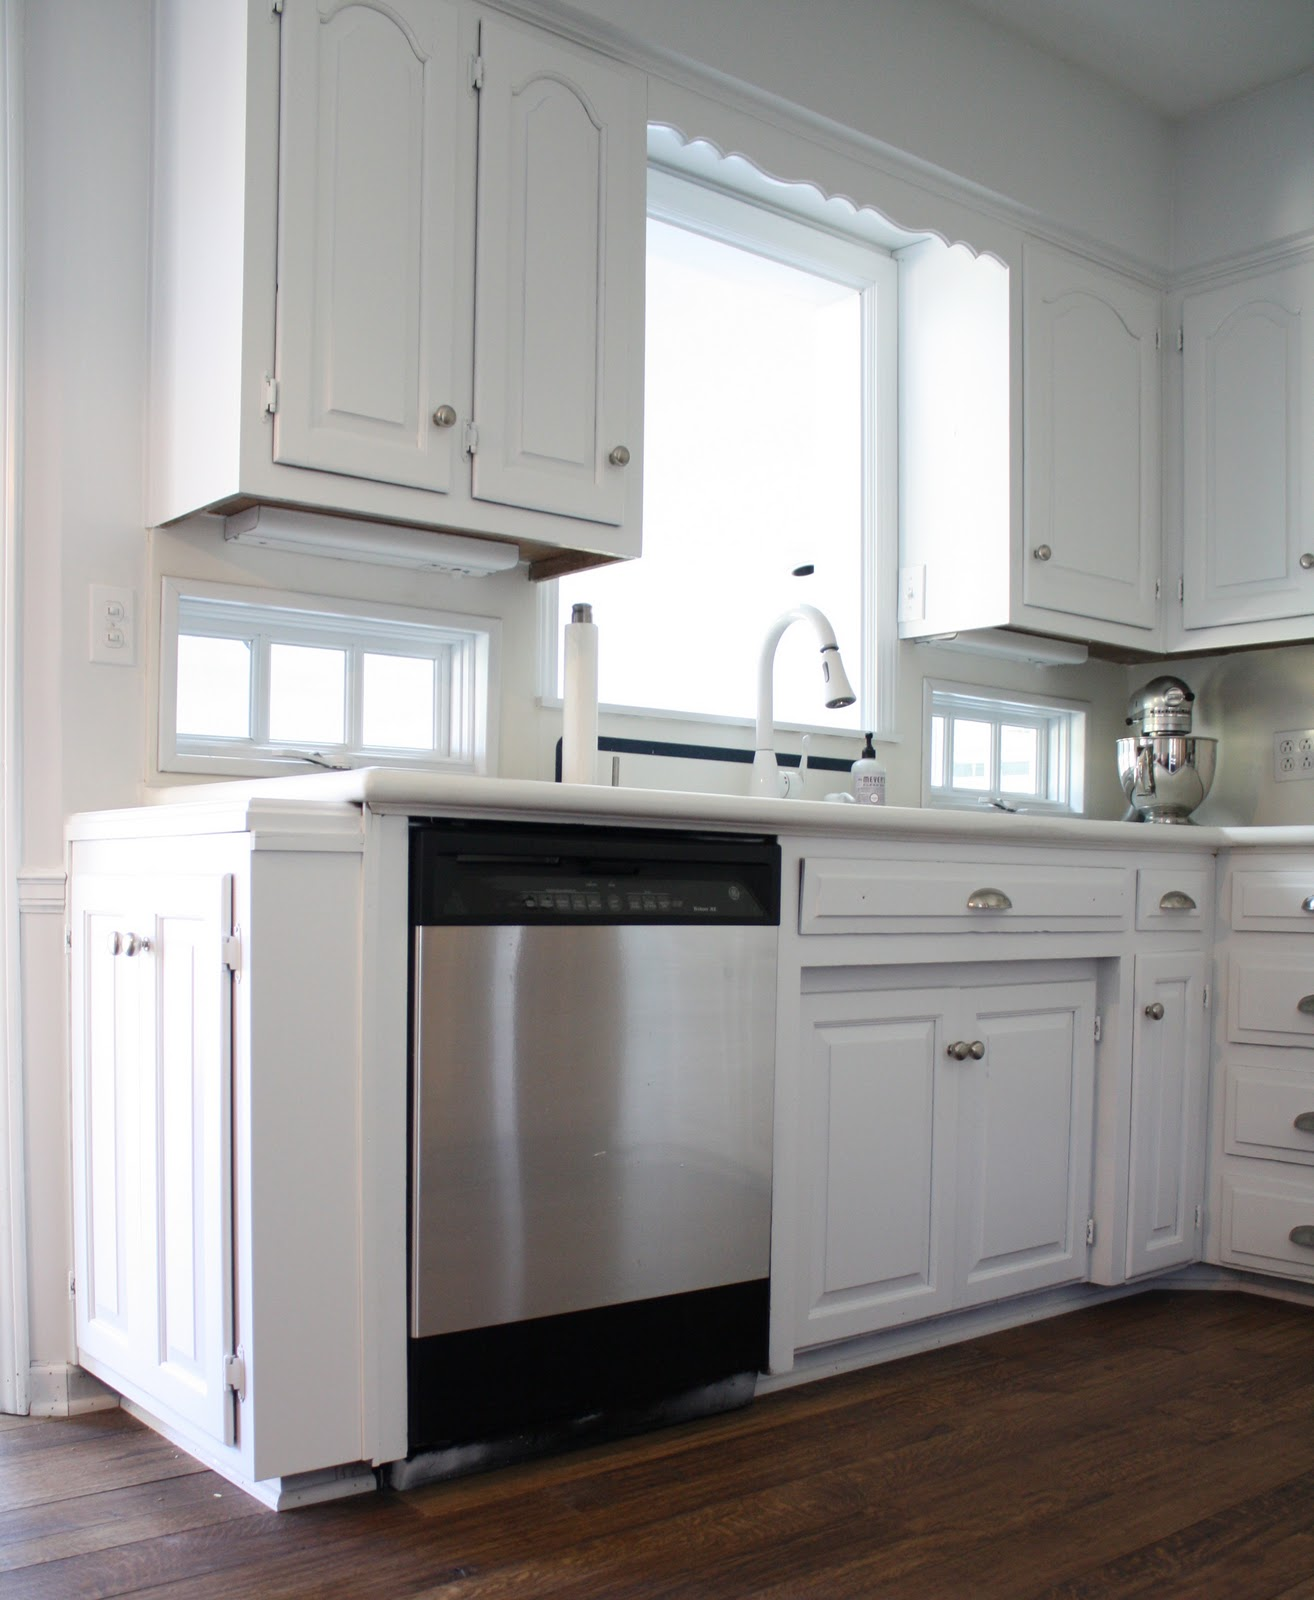 Off White Kitchen Cabinets With Stainless Appliances: DIY Stainless Steel Appliances